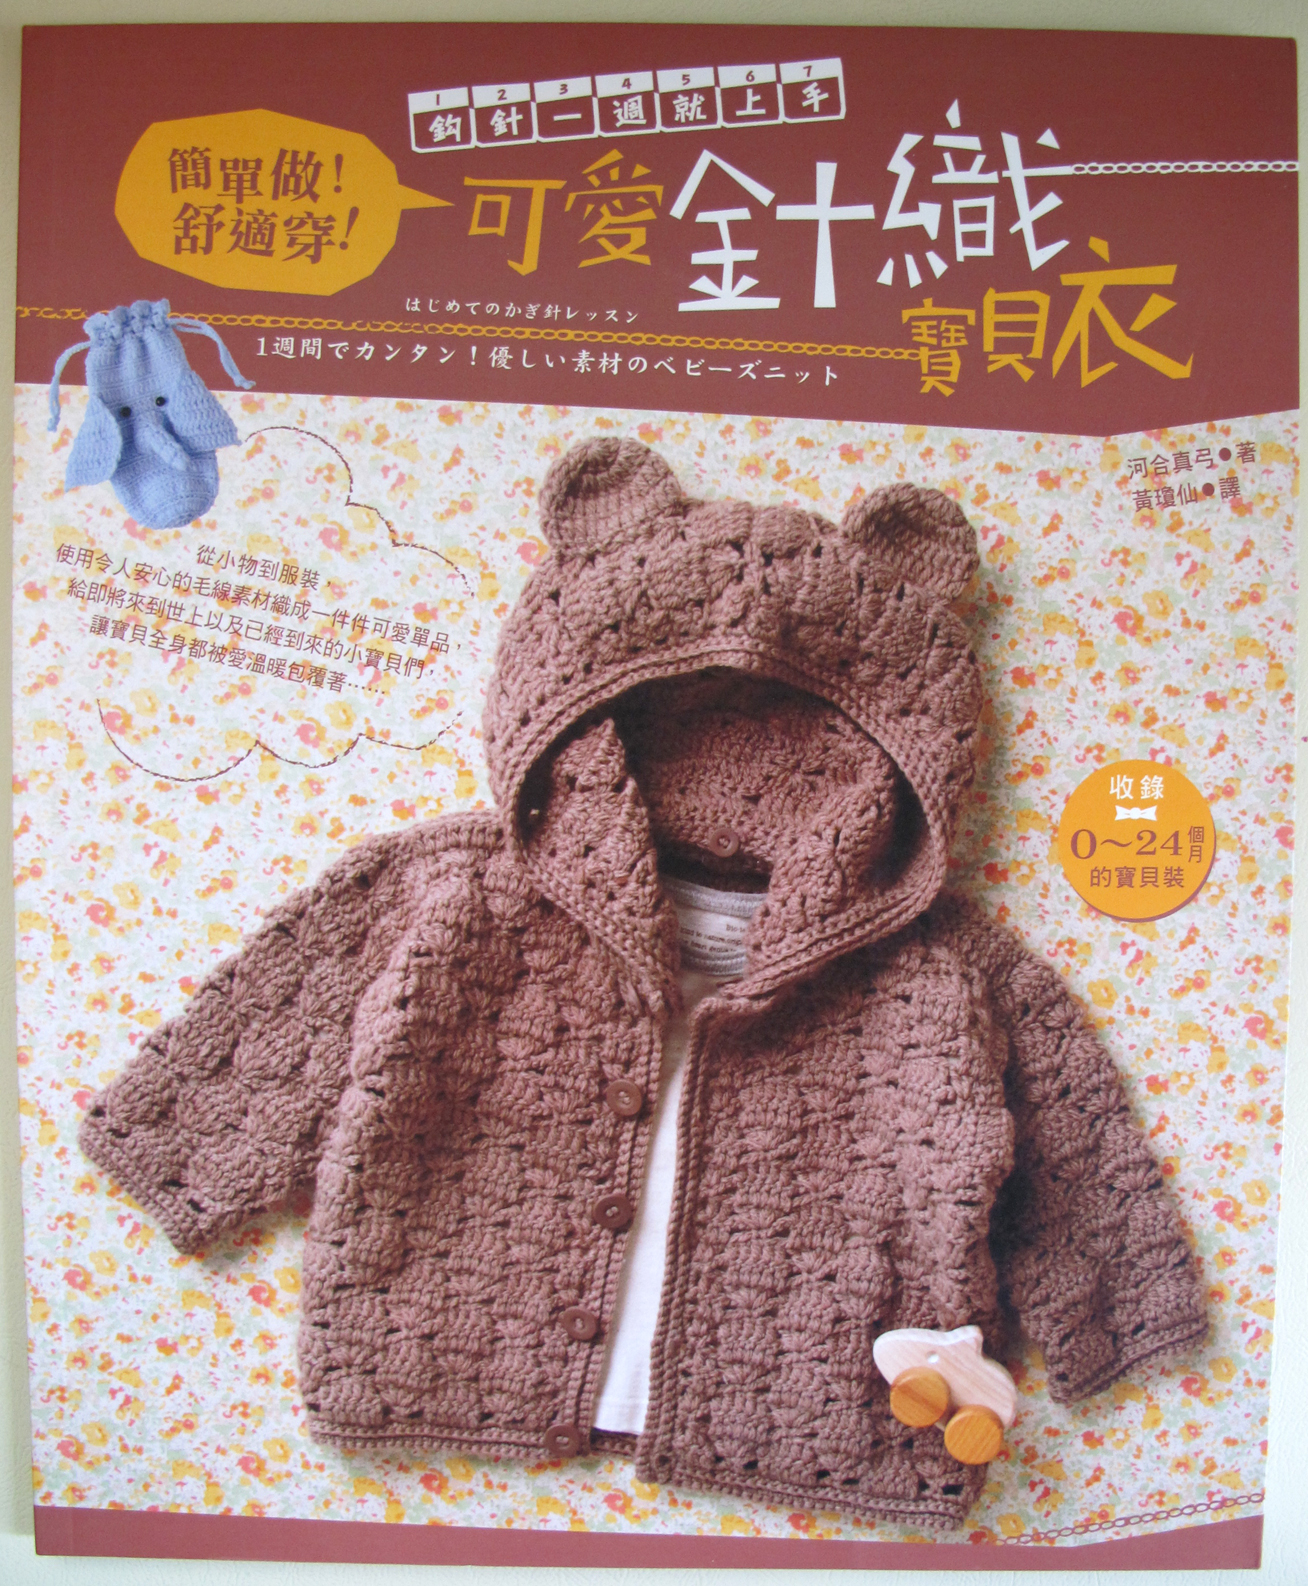 Japanese Crochet Baby Dress Pattern : MyCreativeCard.com: Kawaii One Week Baby Crochet Book ...